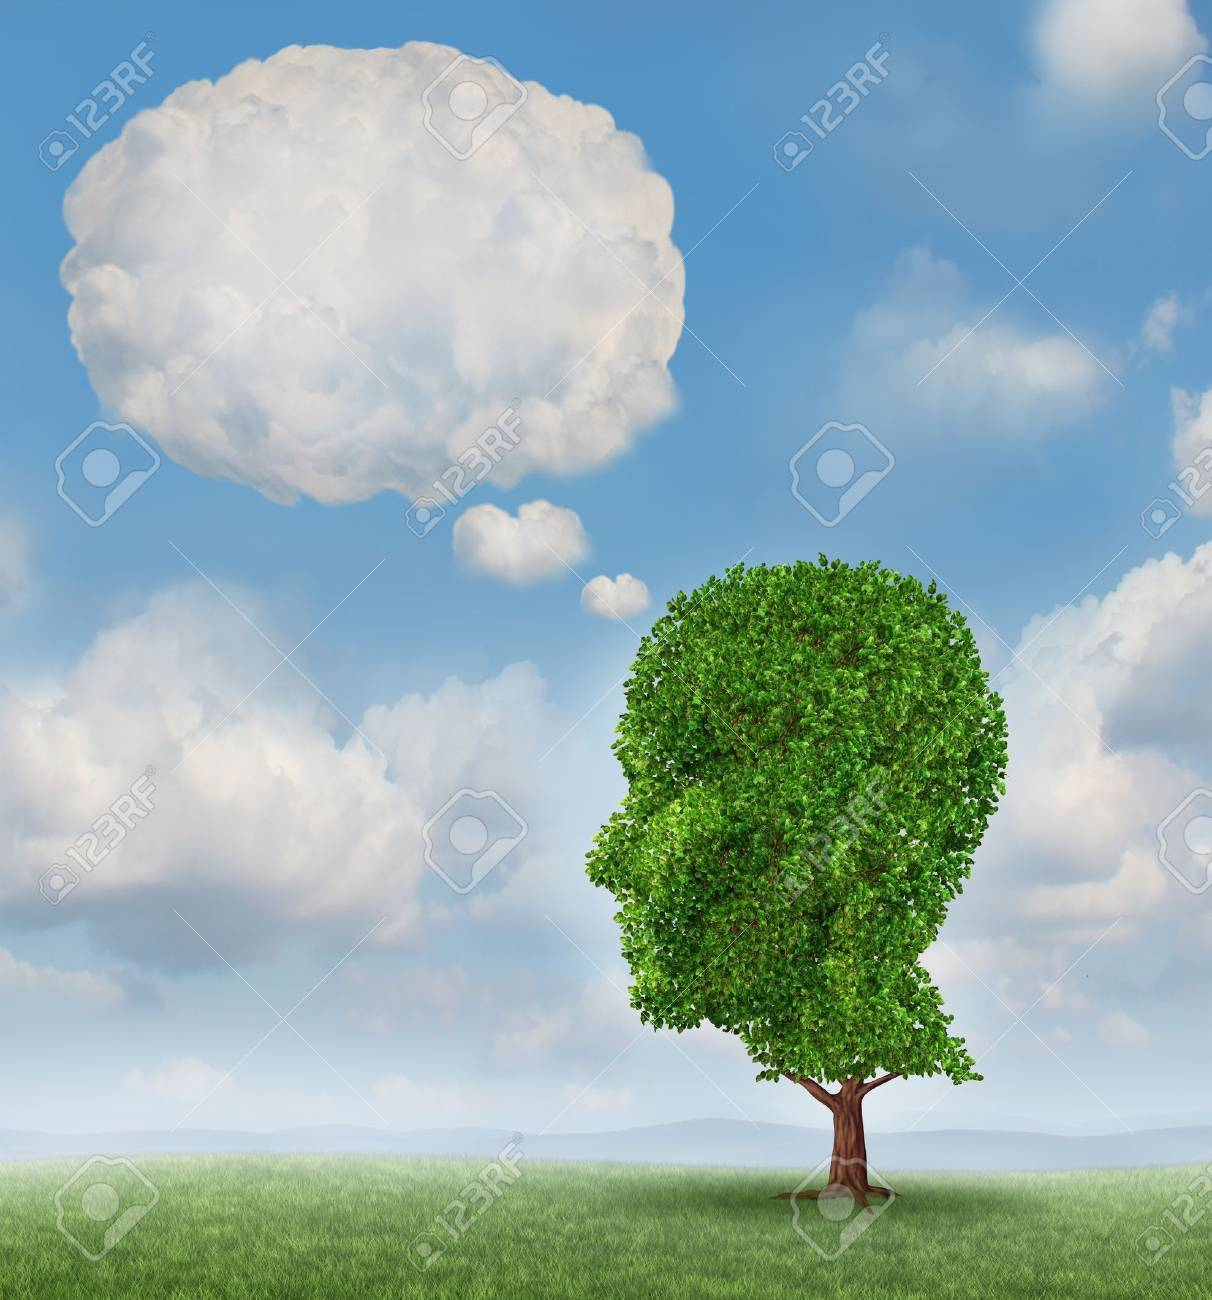 Communication growth with a tree shaped as a human head with a blank word bubble made of clouds as a business concept of growing ways of sending a message using cloud technology Stock Photo - 19446909